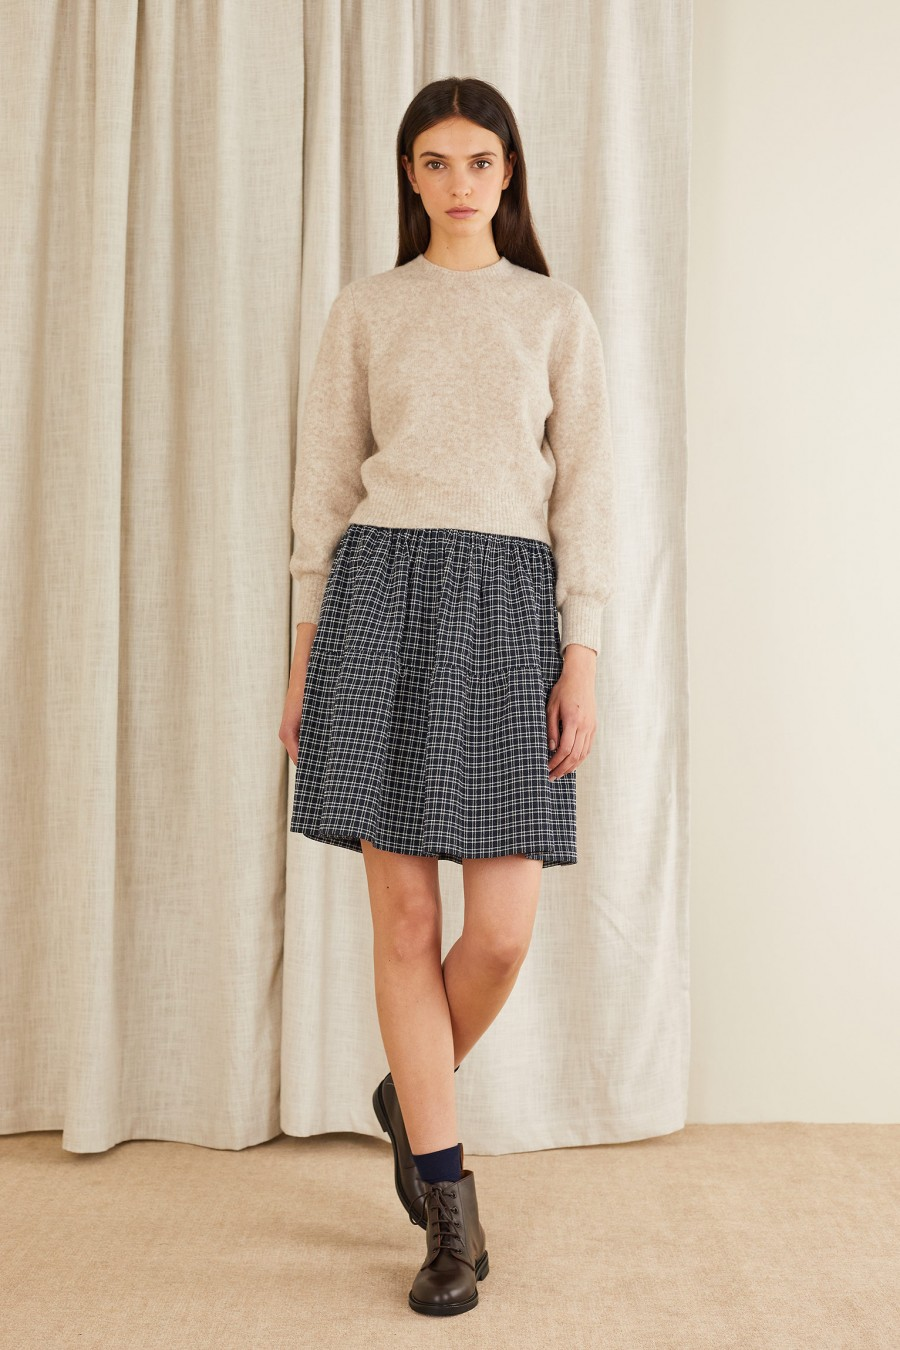 Tiered skirt with elastic waist